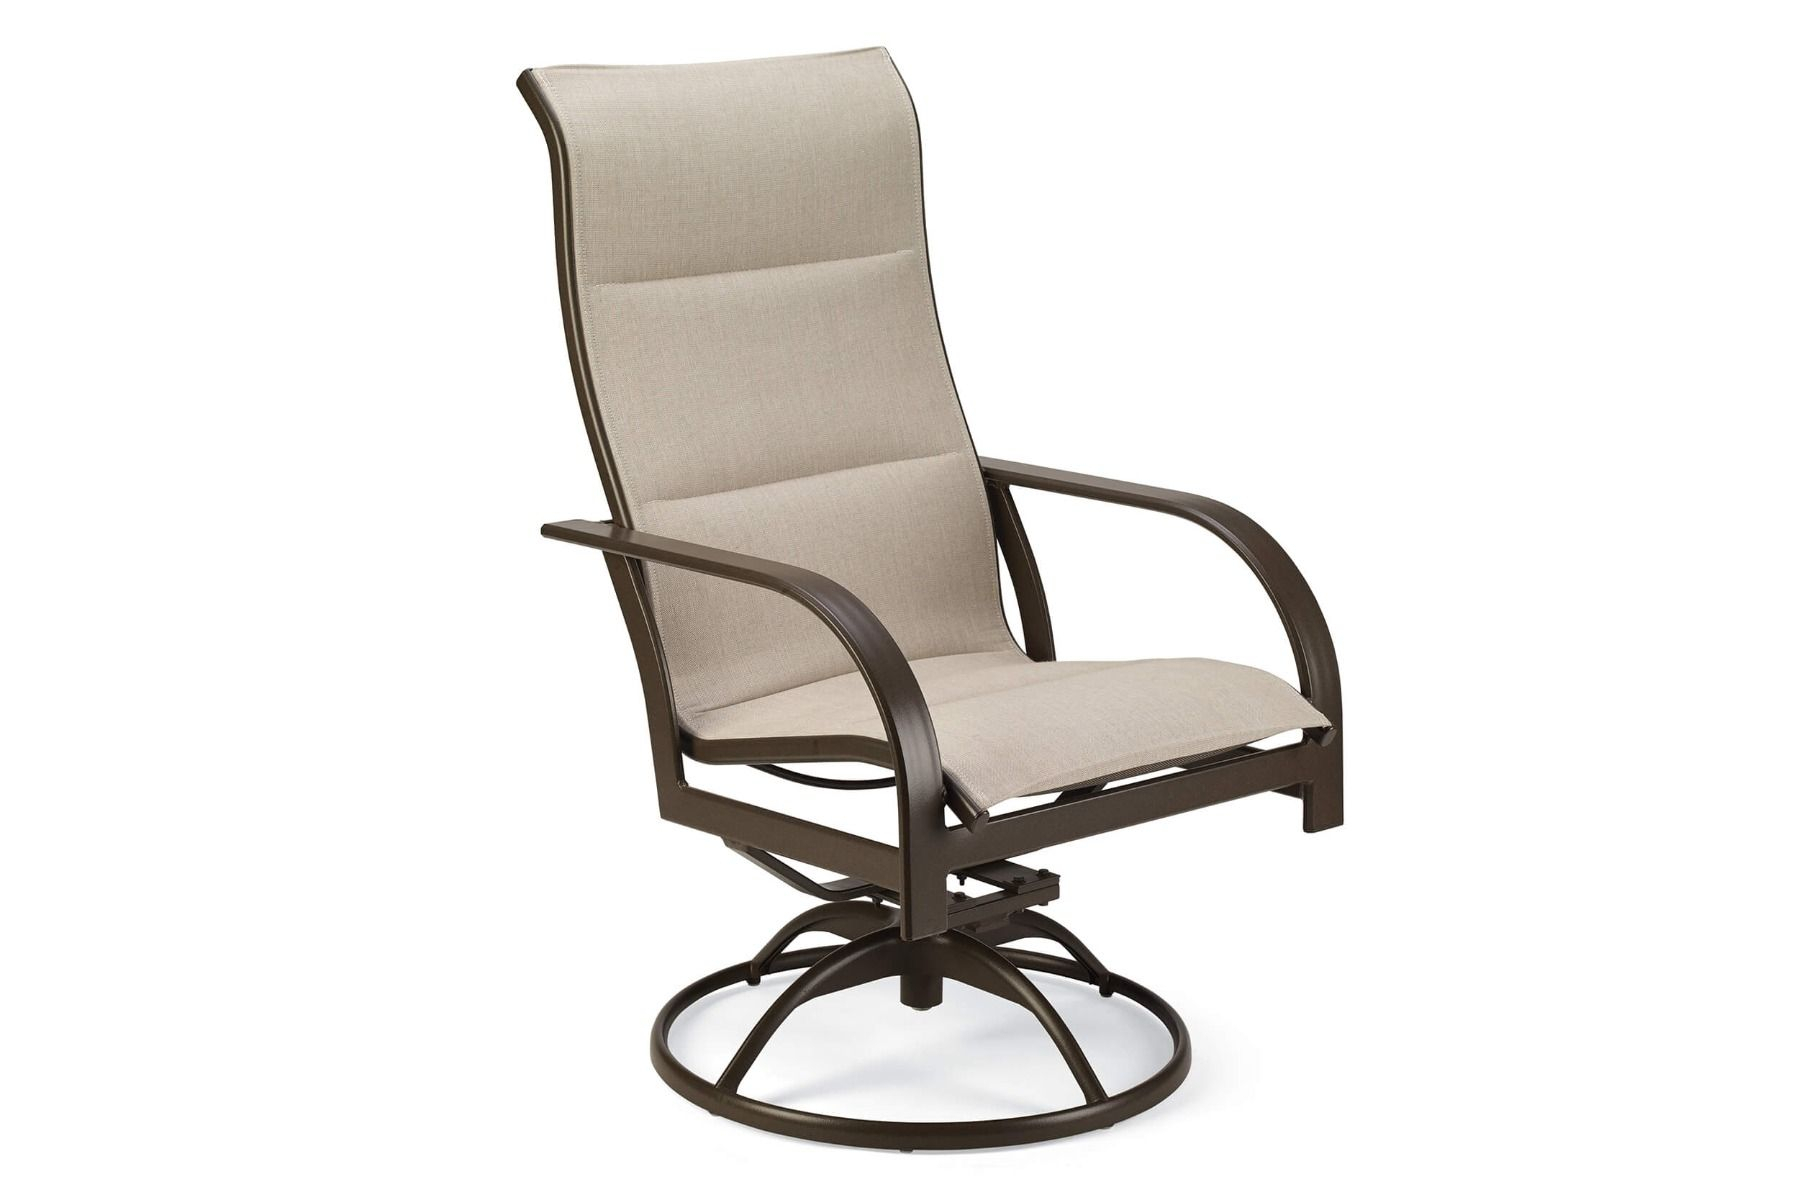 Key West Padded Sling Ultimate High Back Swivel Tilt Chair (2Pk) Pertaining To Sling High Back Swivel Chairs (View 15 of 25)